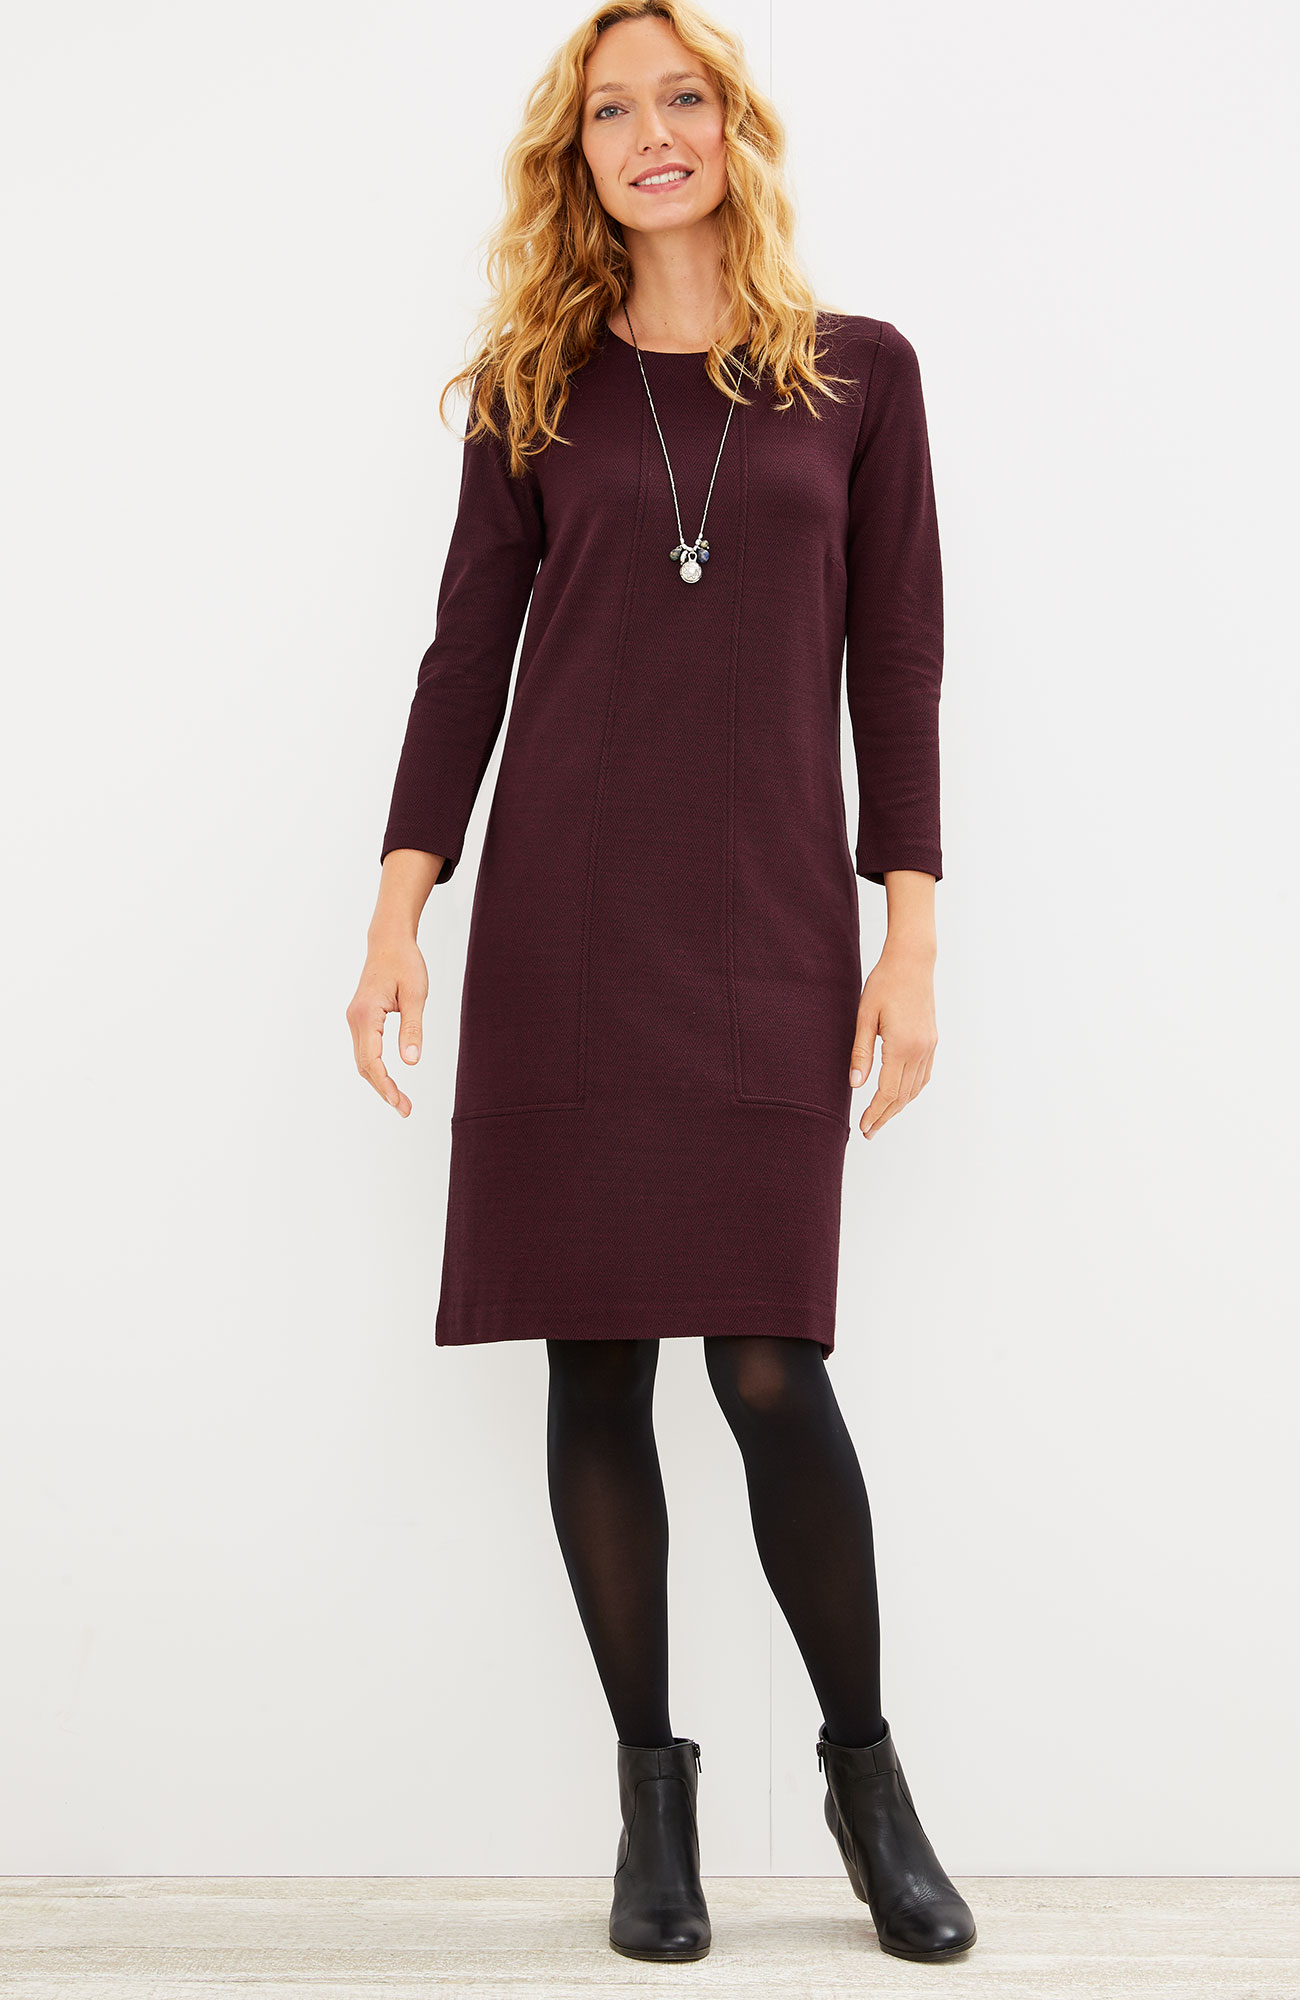 ponte knit seamed herringbone dress